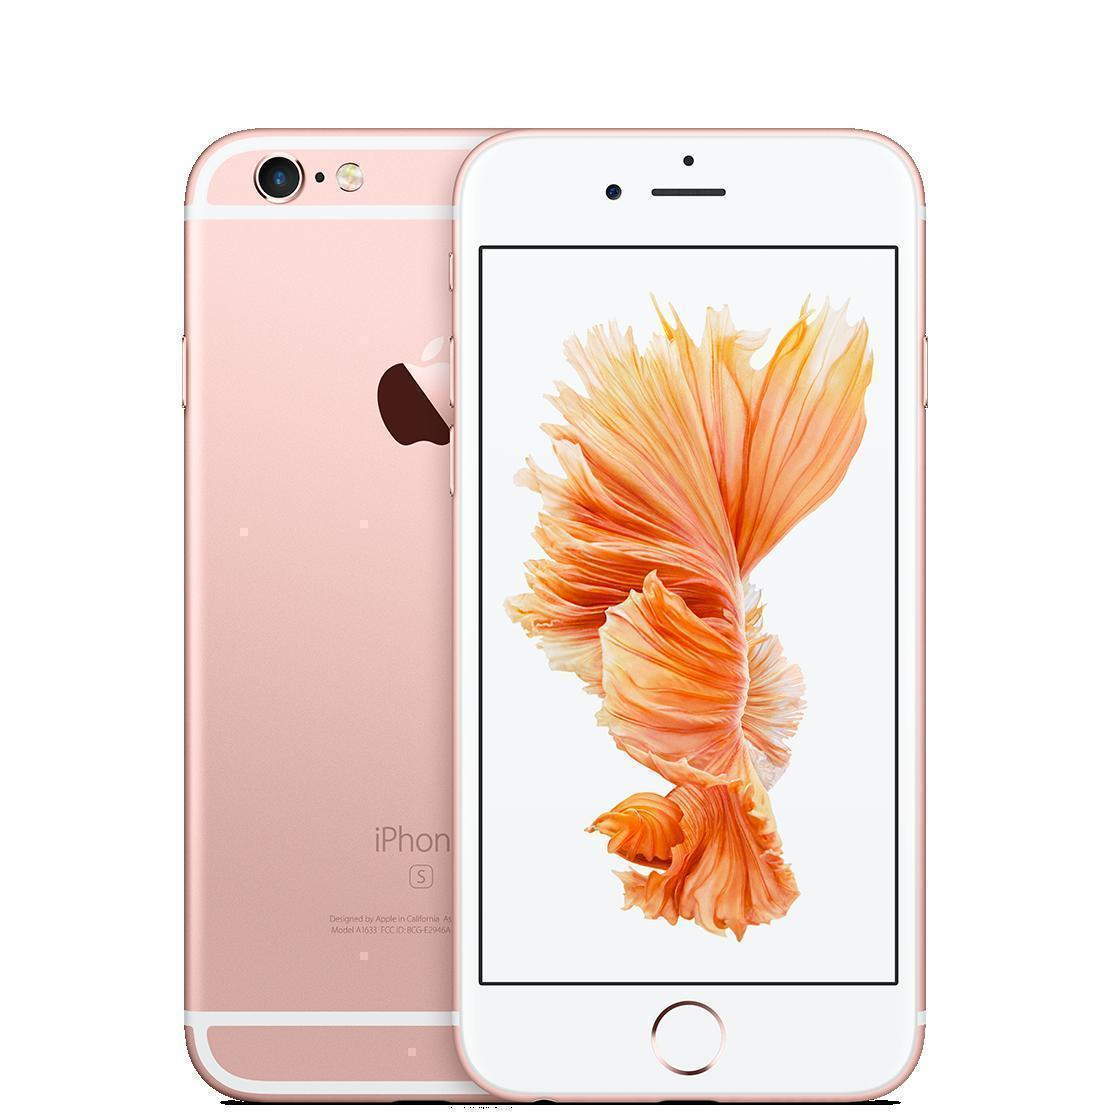 iPhone 6S 16 GB - Rosa - Libre